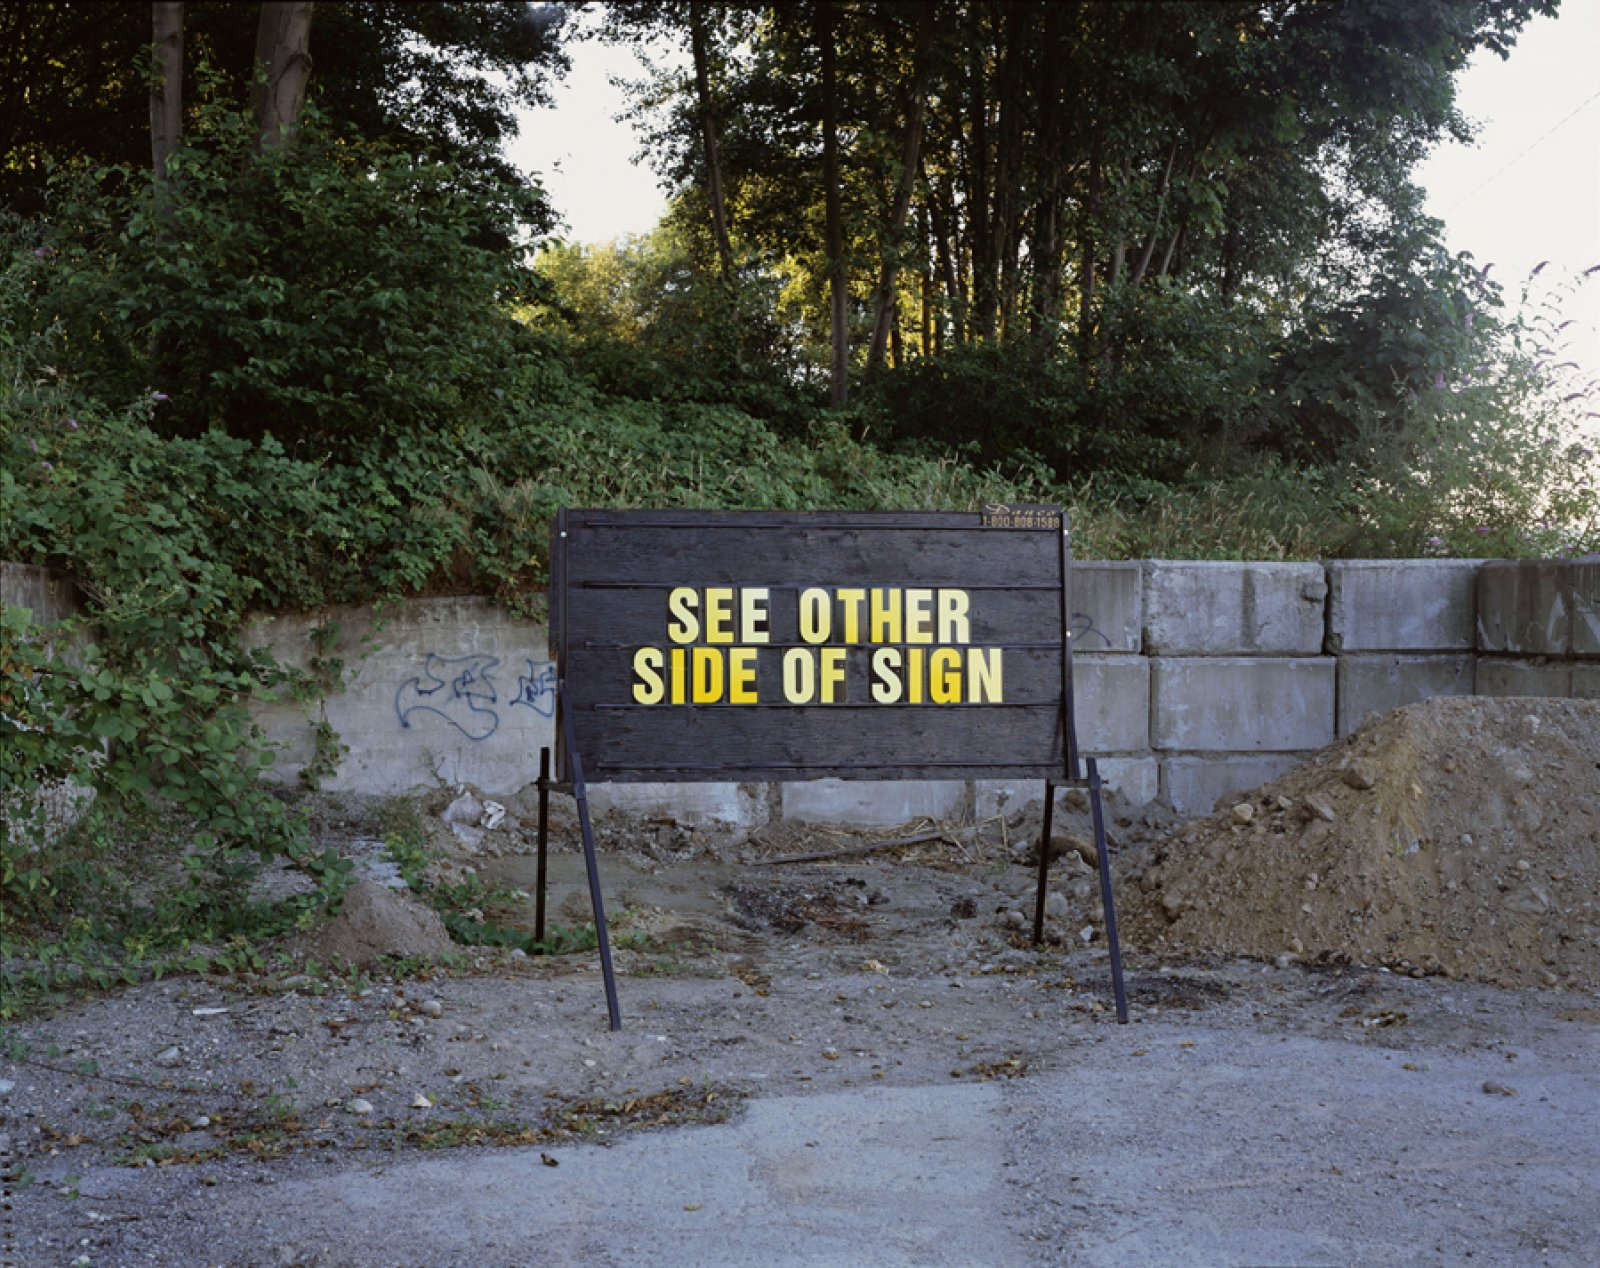 Ron Terada,See Other Side of Sign, 2006, pigment ink print, 44 x 55 in. (112 x 140 cm)